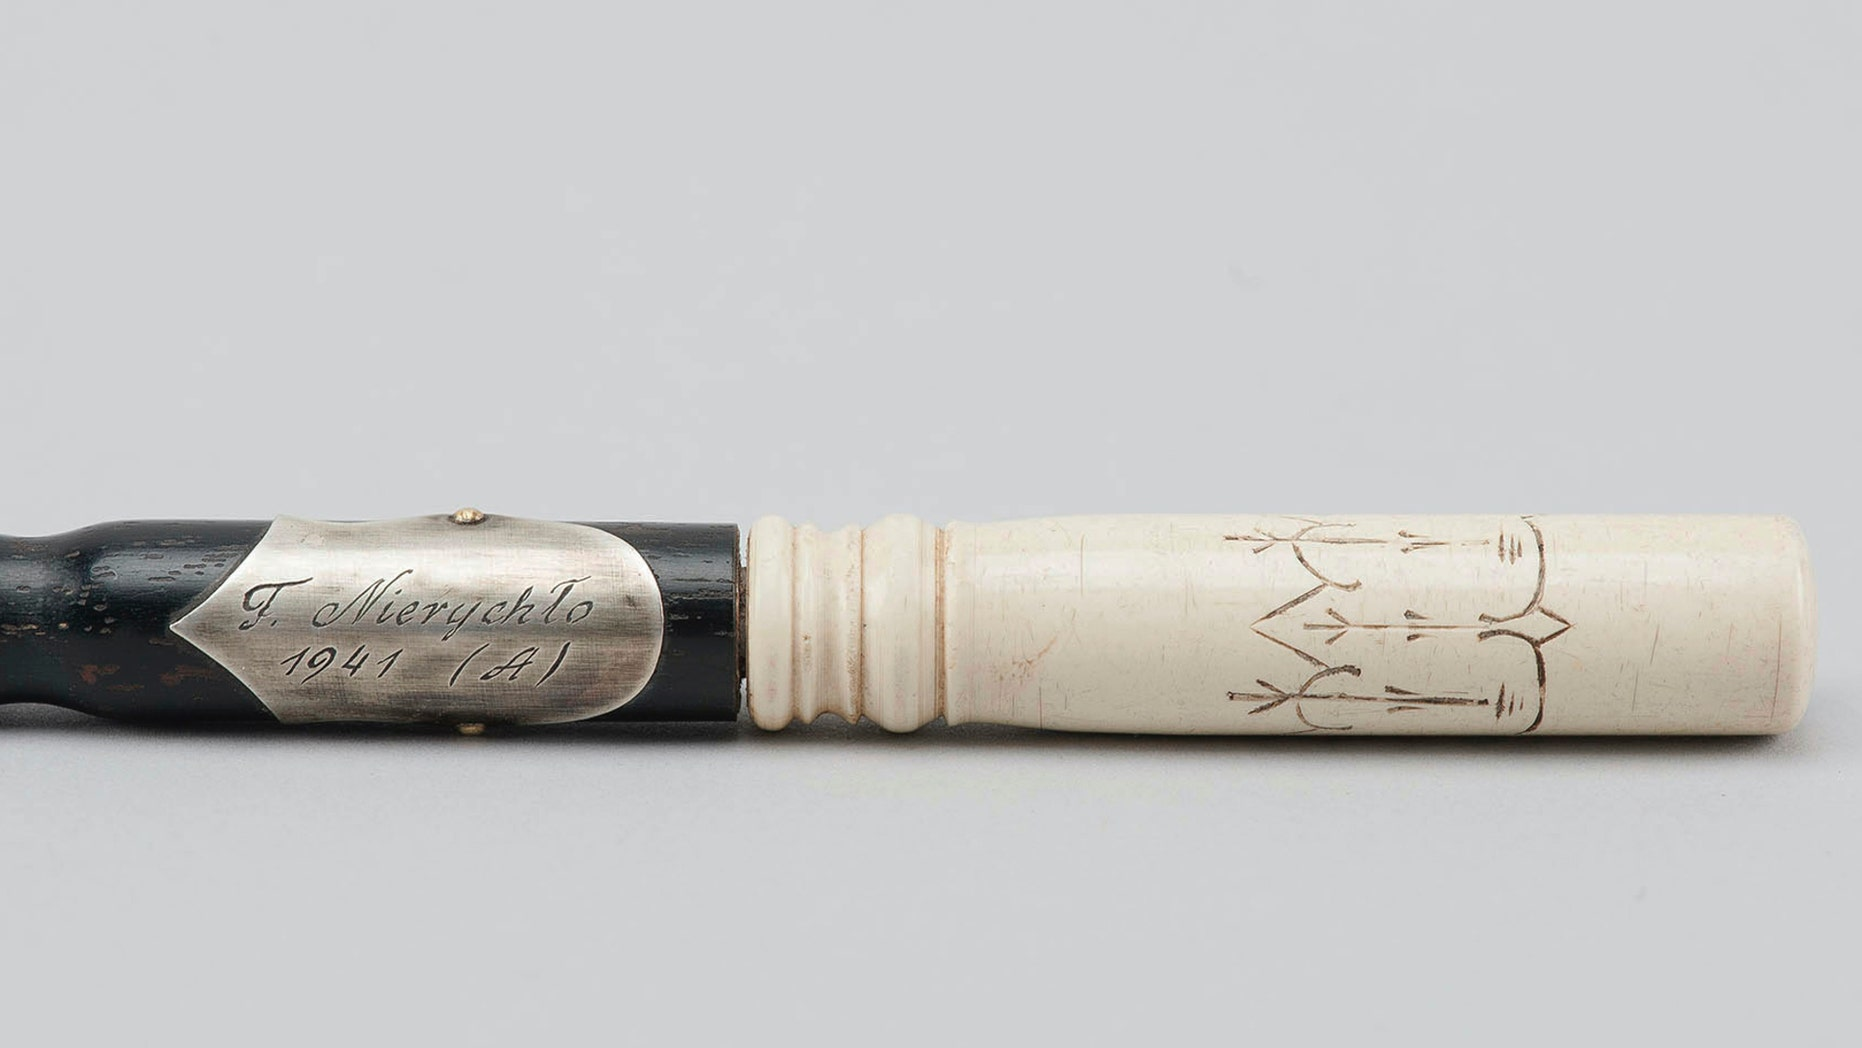 In this Oct. 24, 2018 photo publicly provided by the Museum of the former Nazi German death camp of Auschwitz Birkenau is seen the wood-and-ivory baton of Franciszek Nierychlo, Auschwitz prisoner and controversial organizer and first conductor of the inmates' orchestra, in Oswiecim, Poland. (Museum of the former Nazi German death camp of Auschwitz Birkenau/Marcin Inglot via AP)